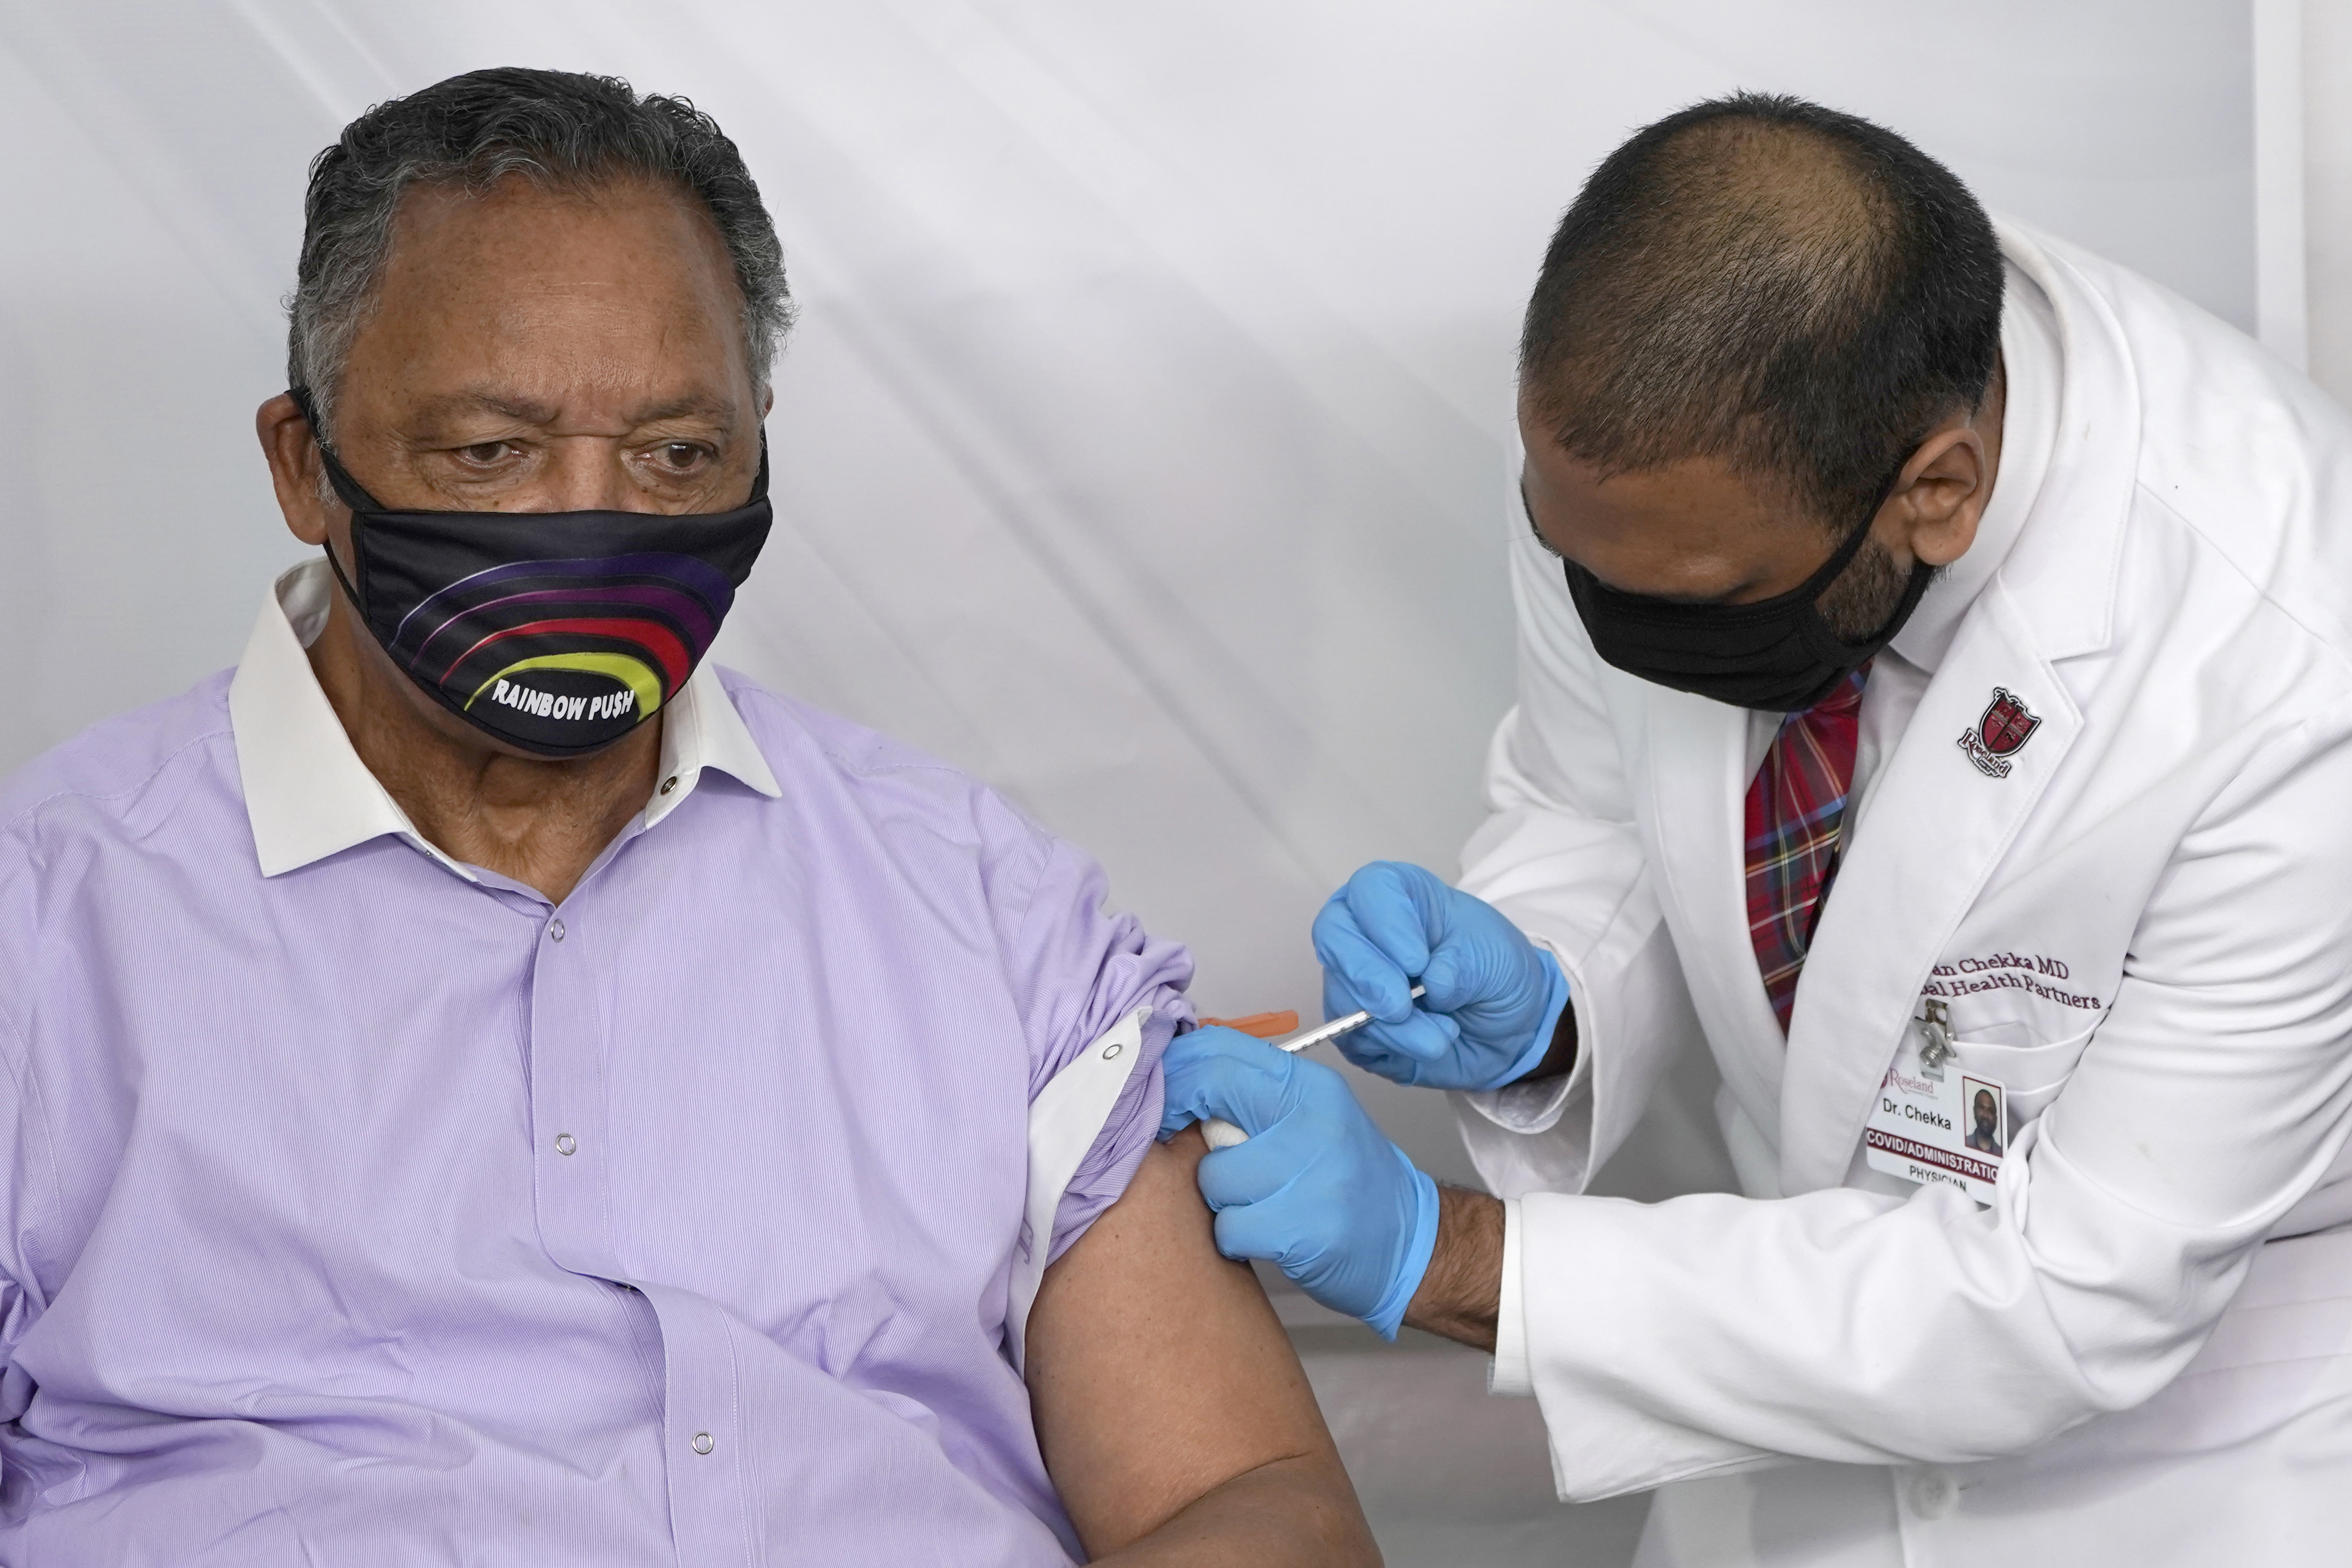 Jesse Jackson and wife 'responding positively' to Covid-19 treatment